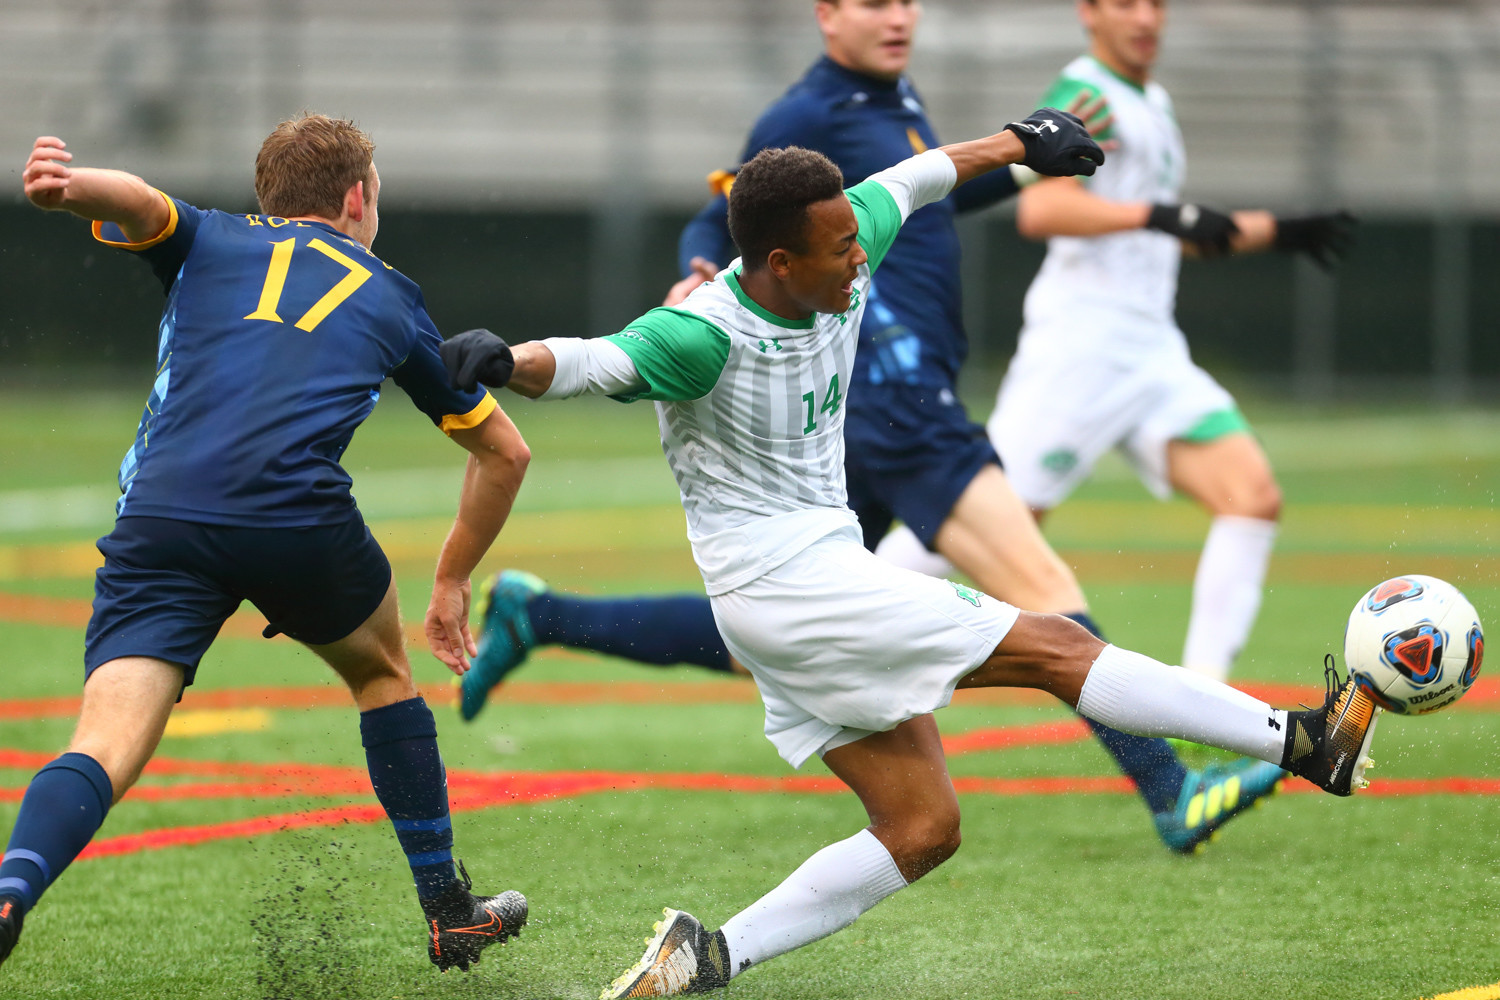 Manhattan's Troy Carrington (14) works his way around a couple of Quinnipiac defenders in the Jaspers' MAAC Tournament quarterfinal game at Gaelic Park.